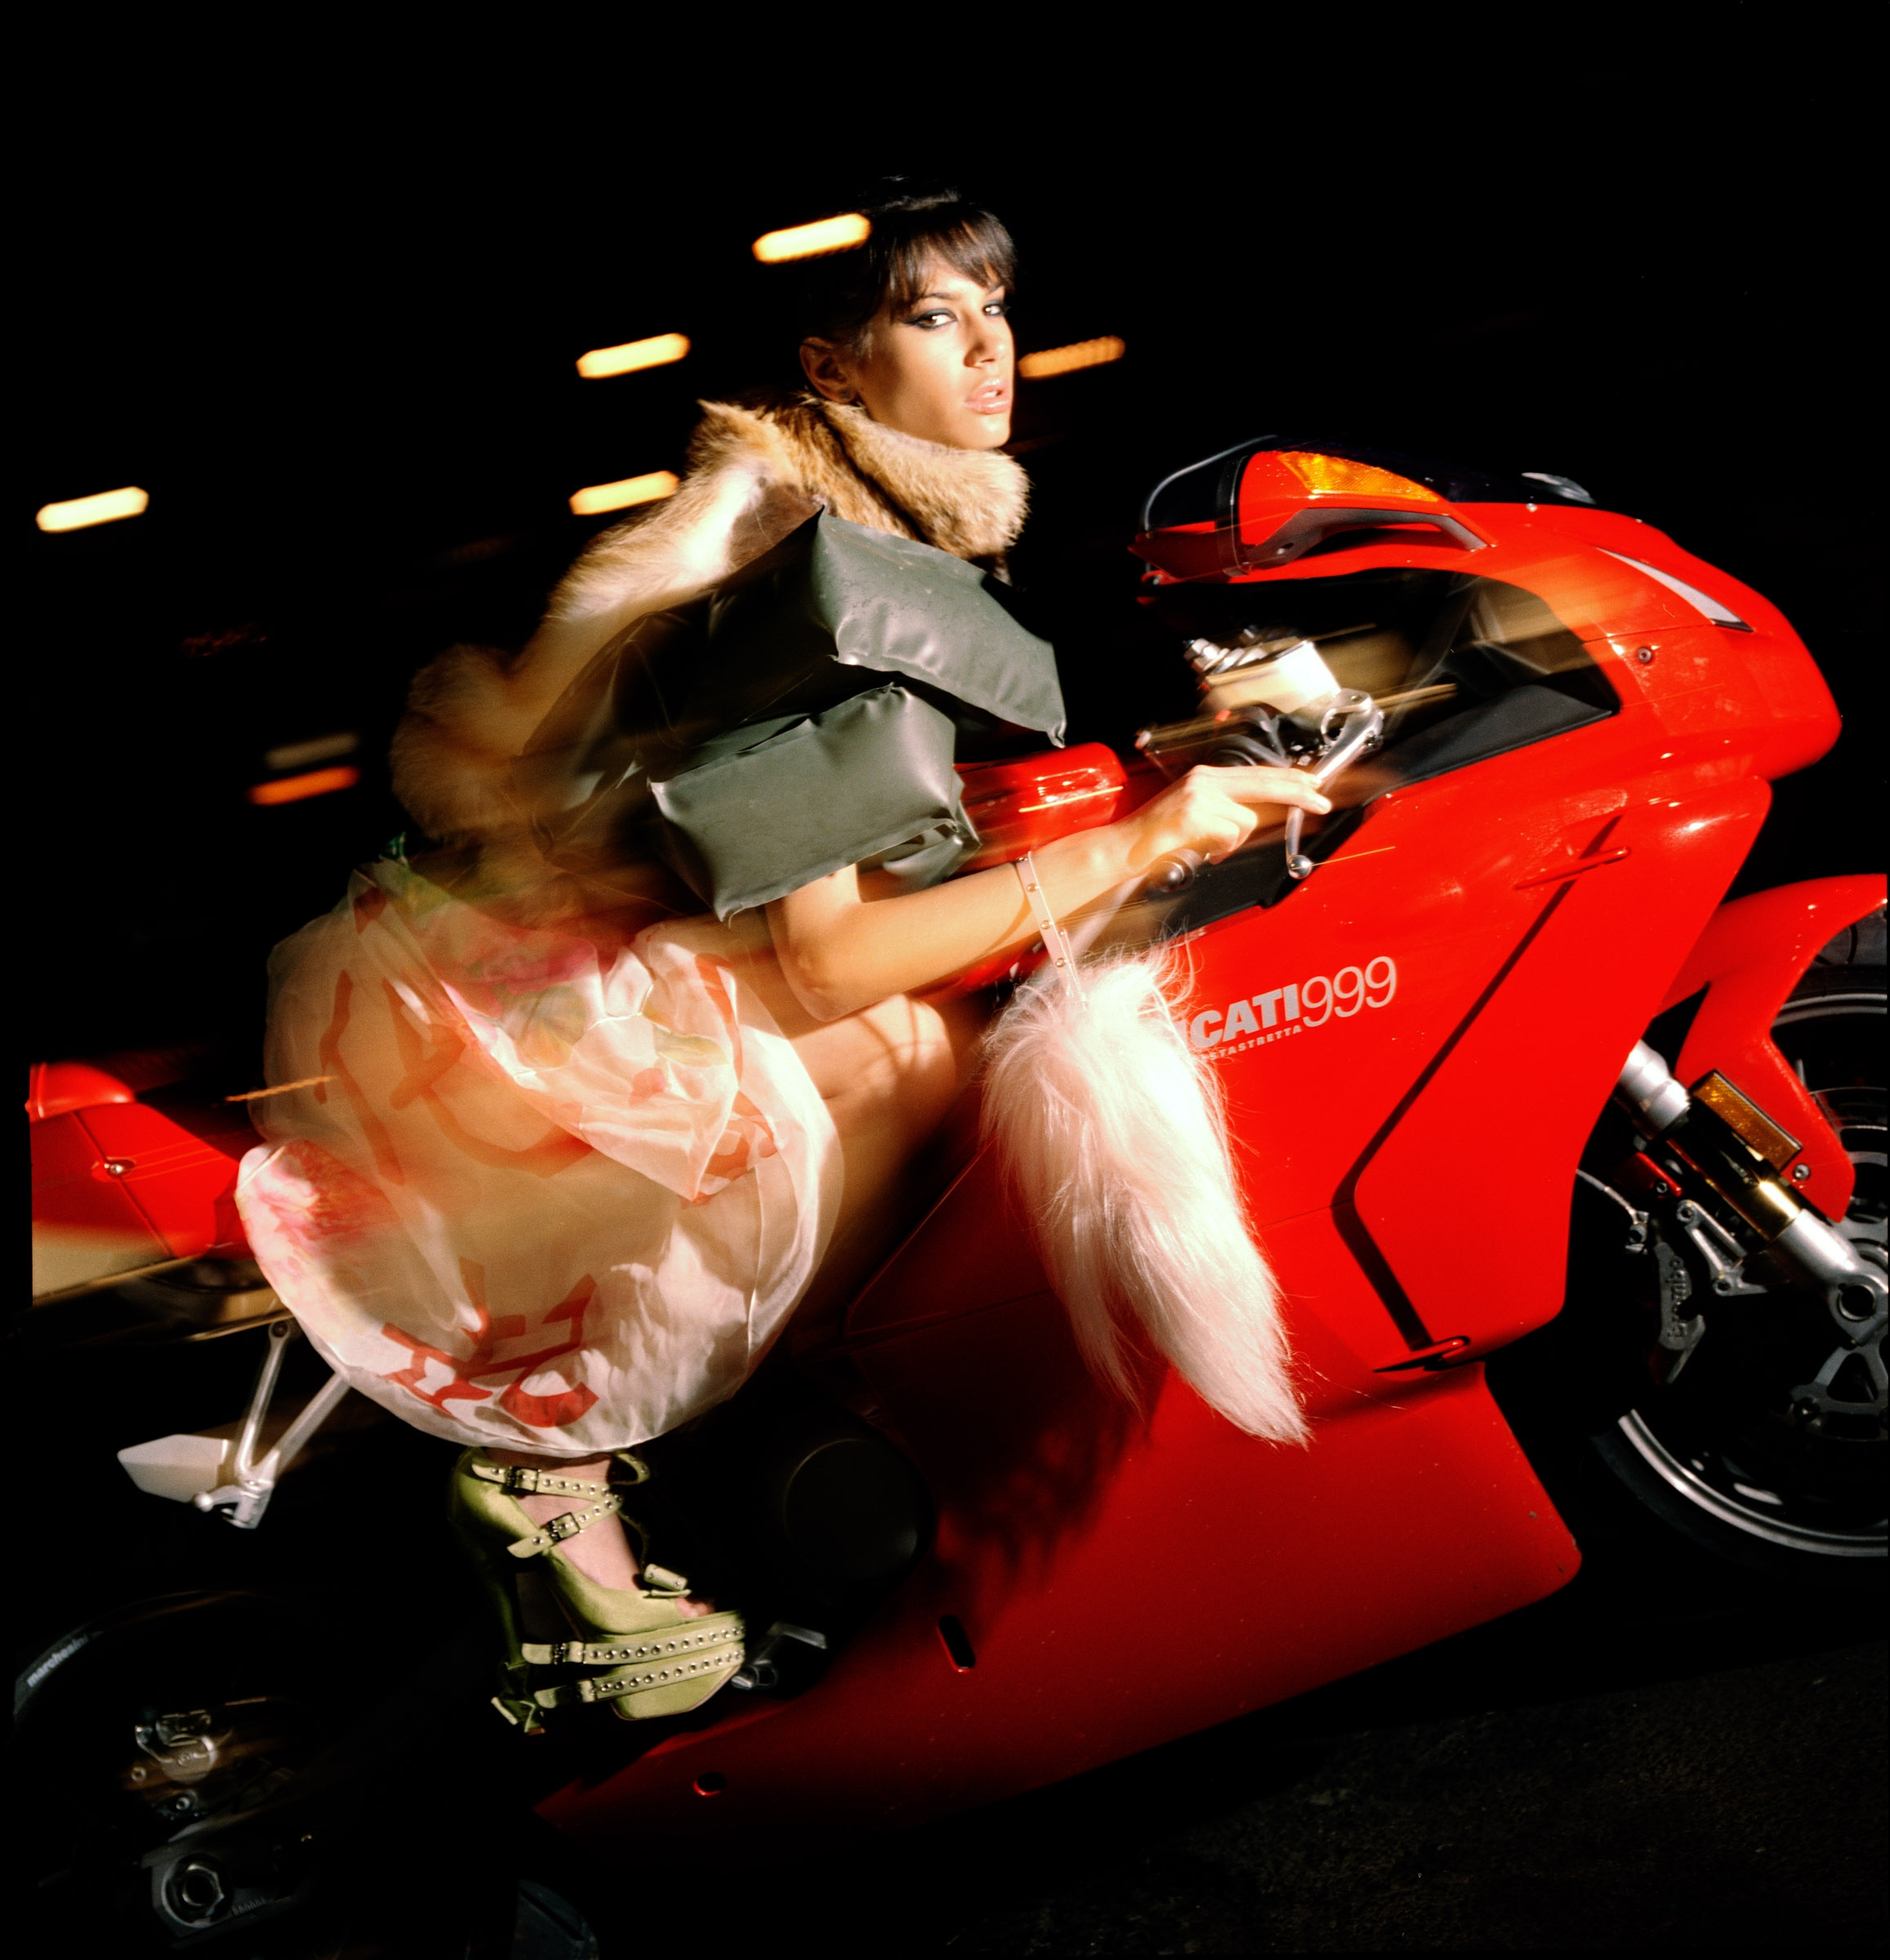 Action shot of a model posed on a red motorcycle.